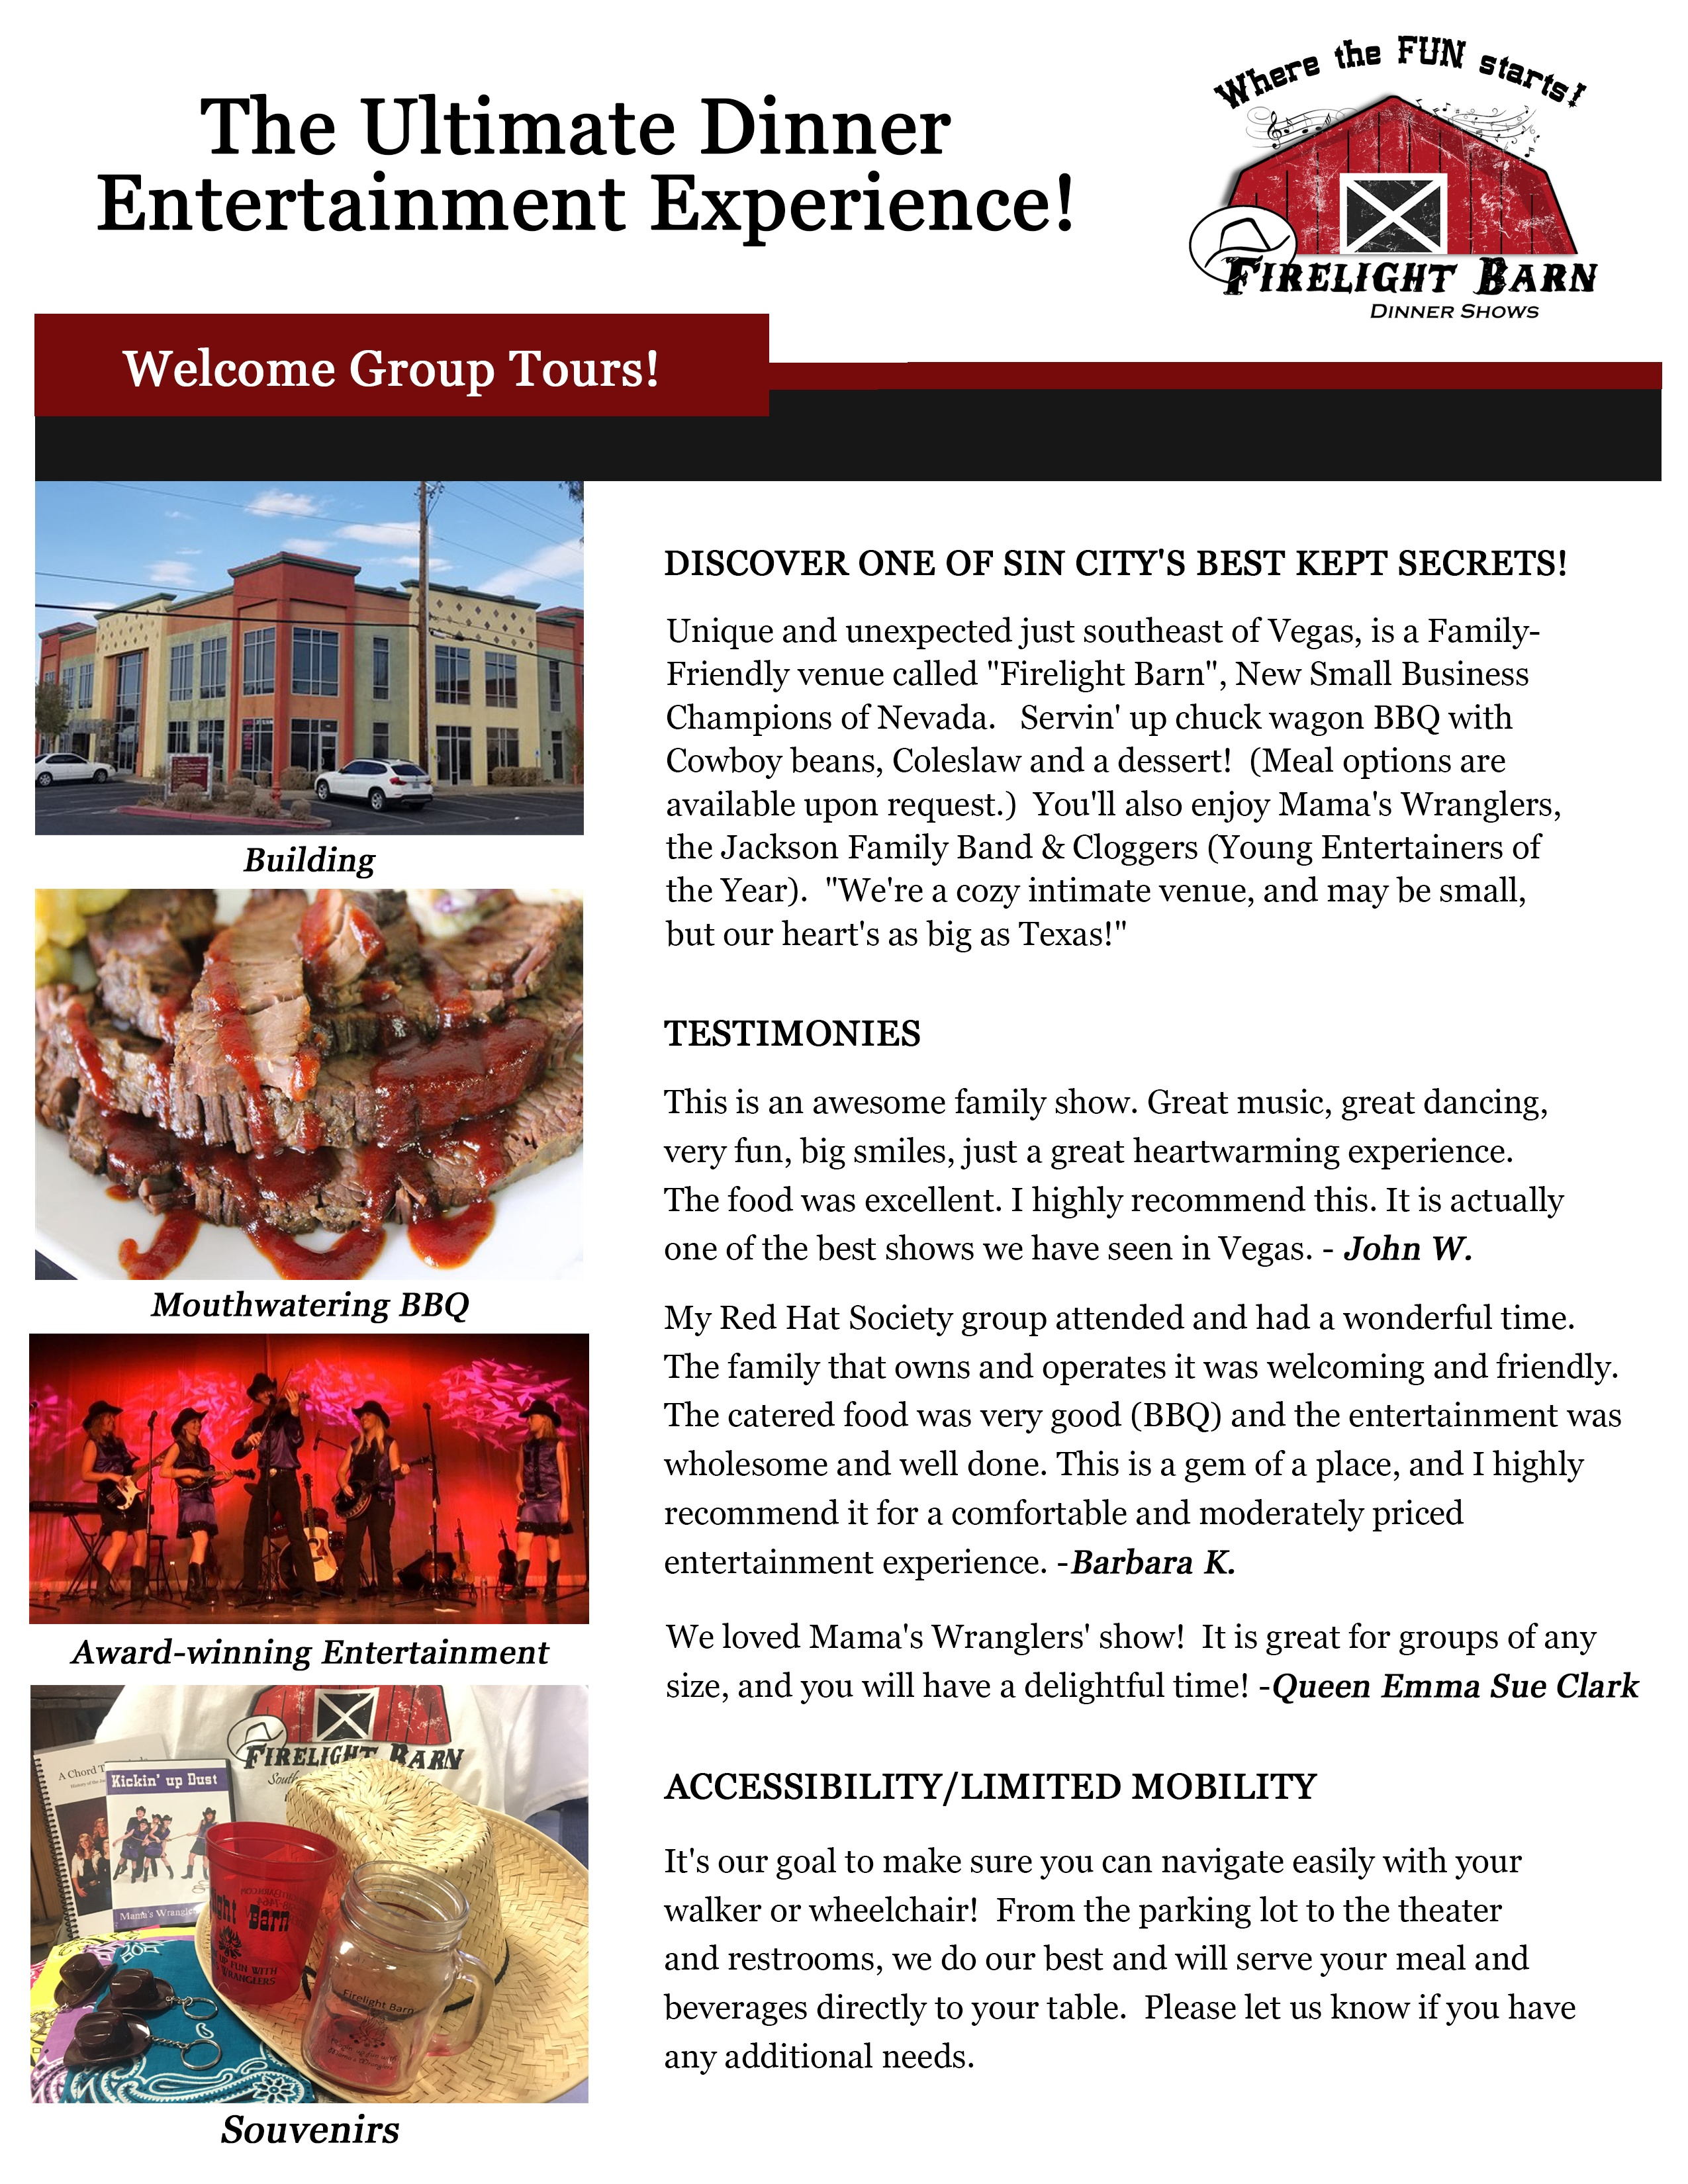 Client project - a new profile sheet for Firelight Barn ...